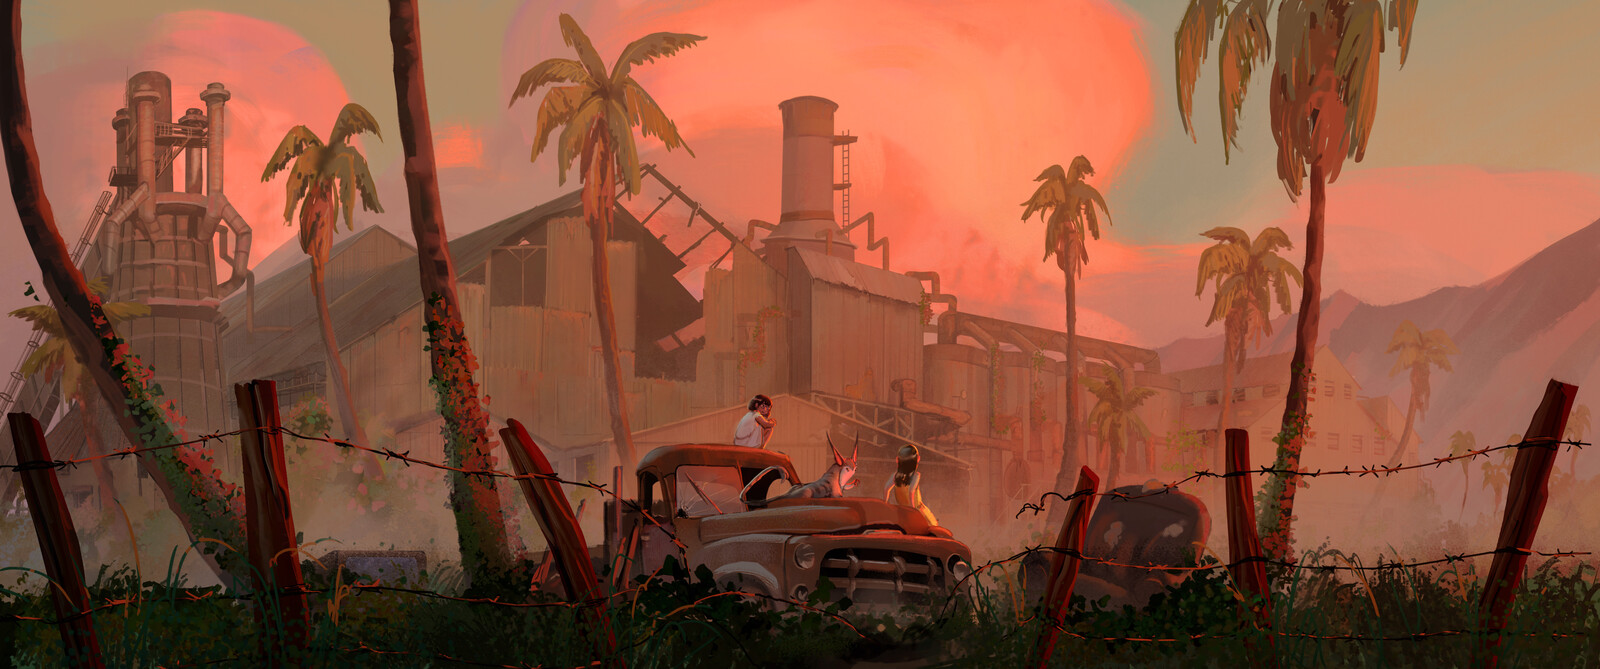 Sunset by the Sugar Mill